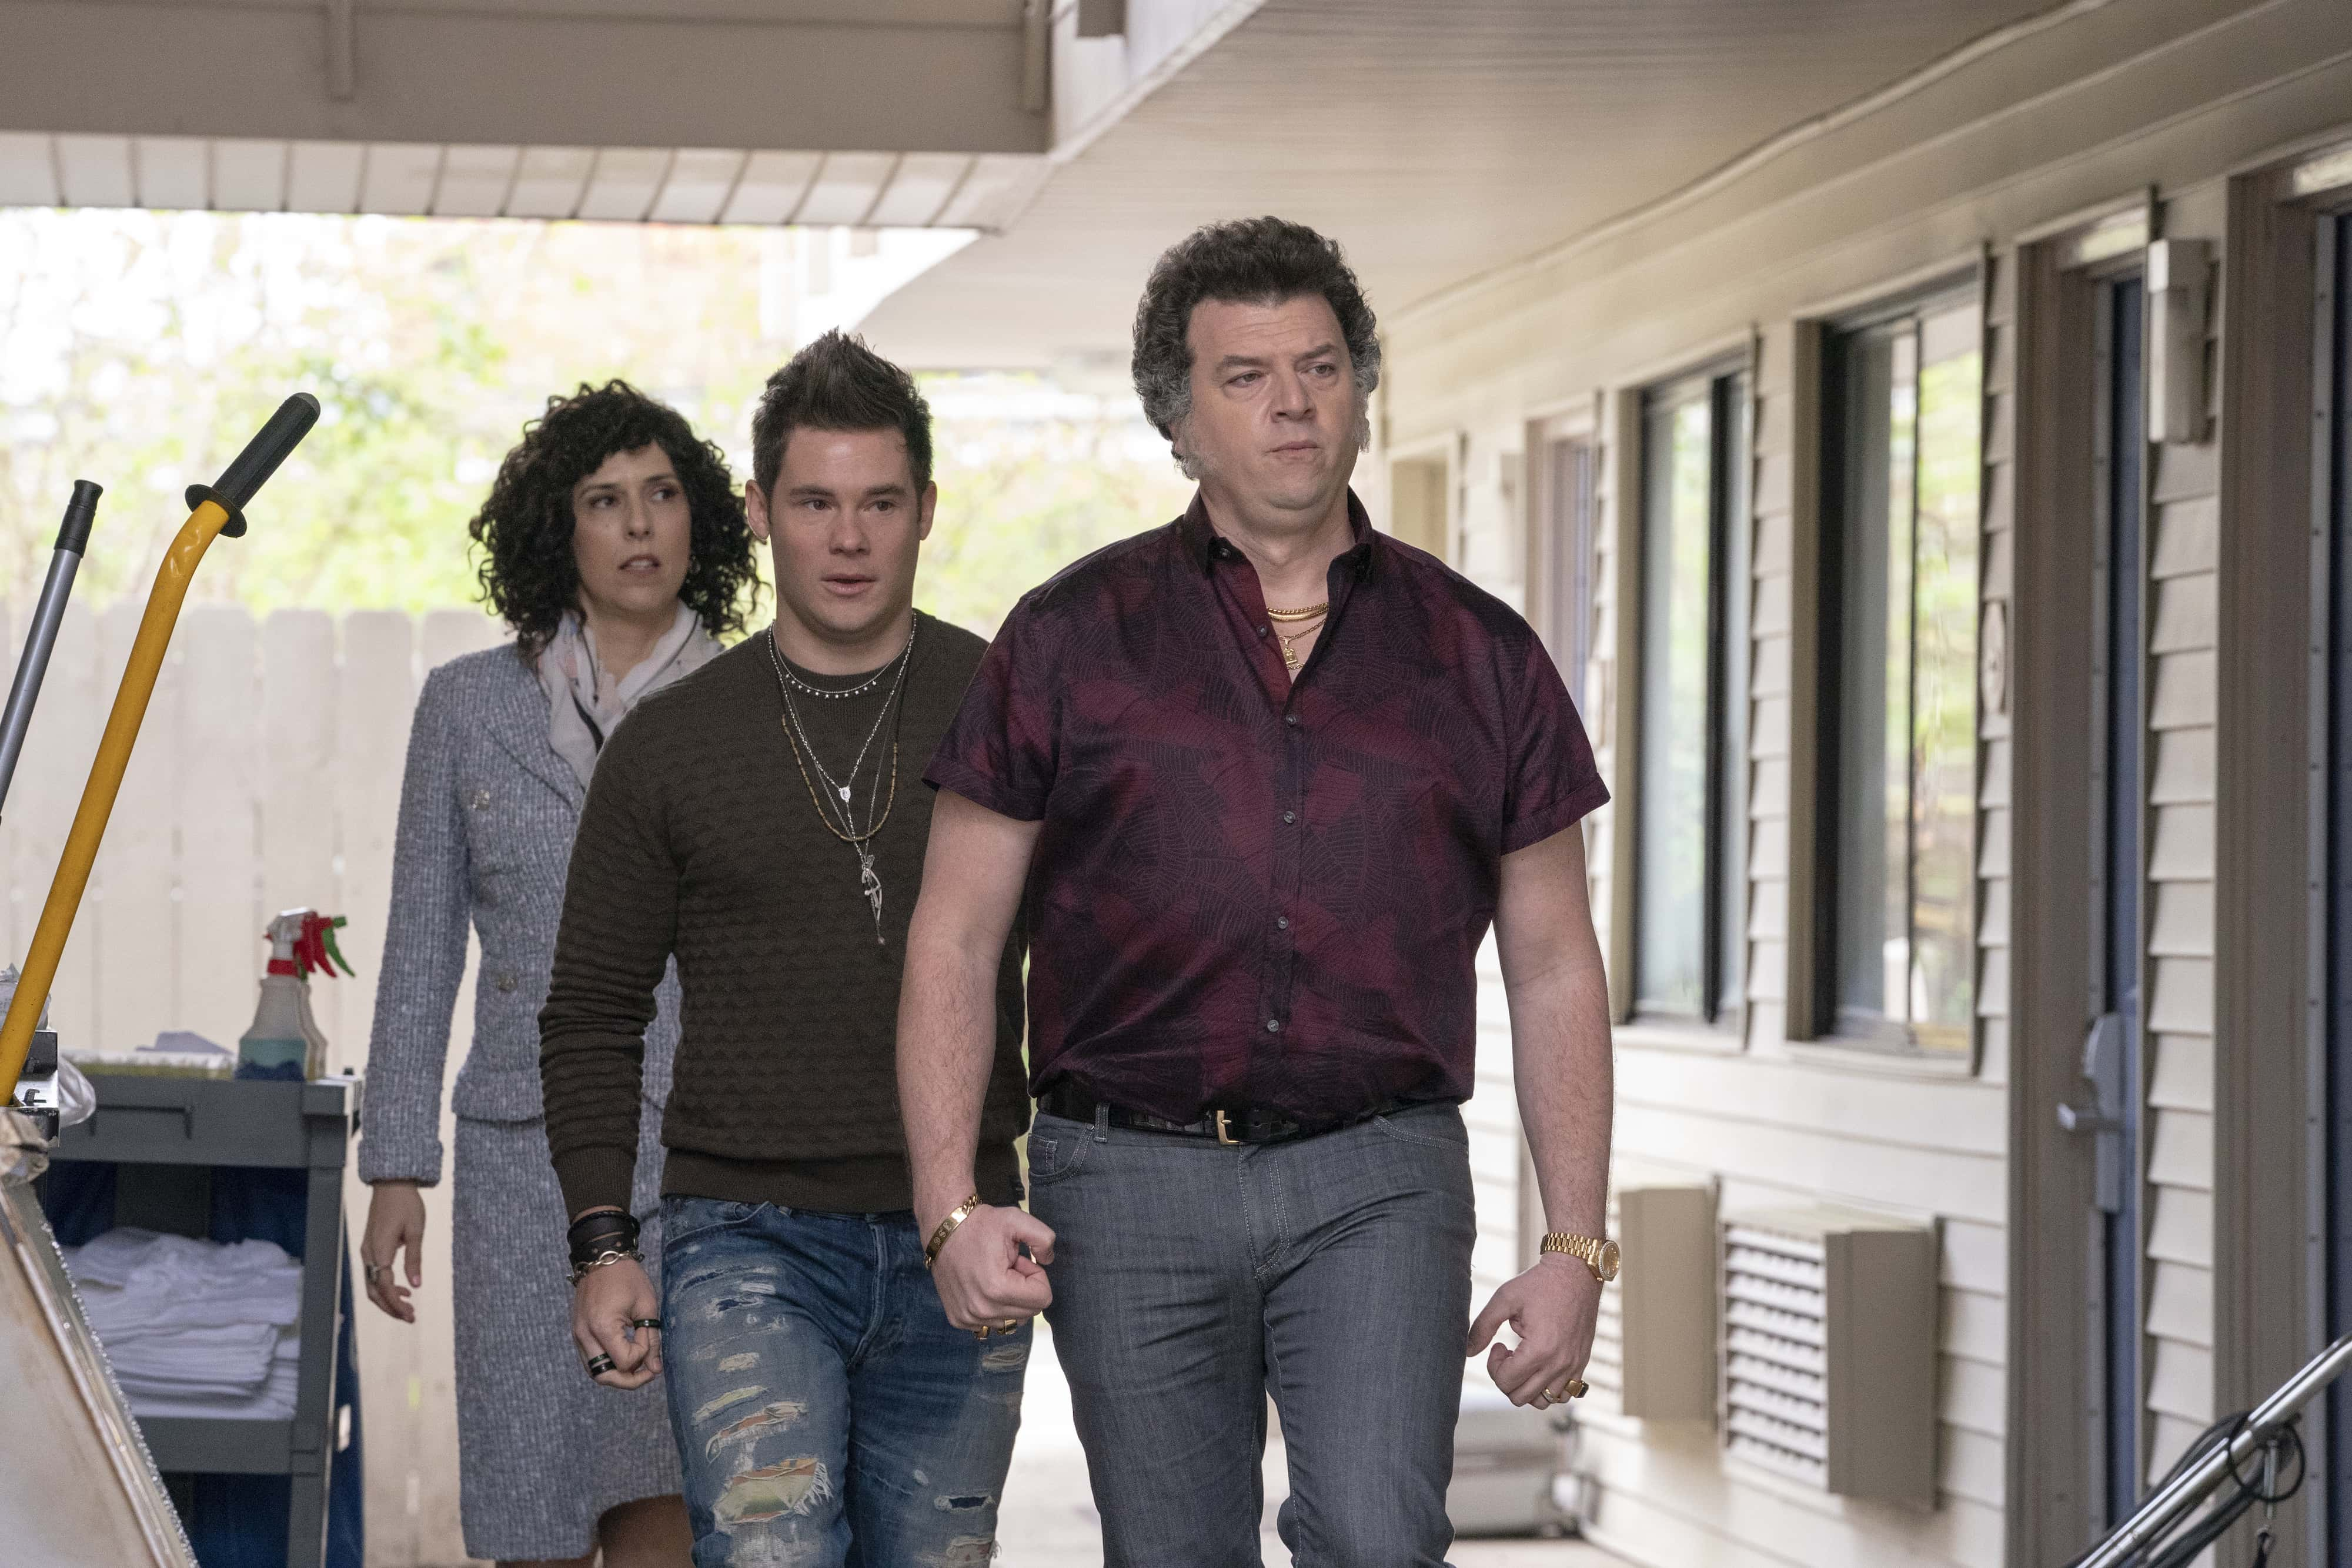 The Righteous Gemstones' season 1 episode 2 focuses on the